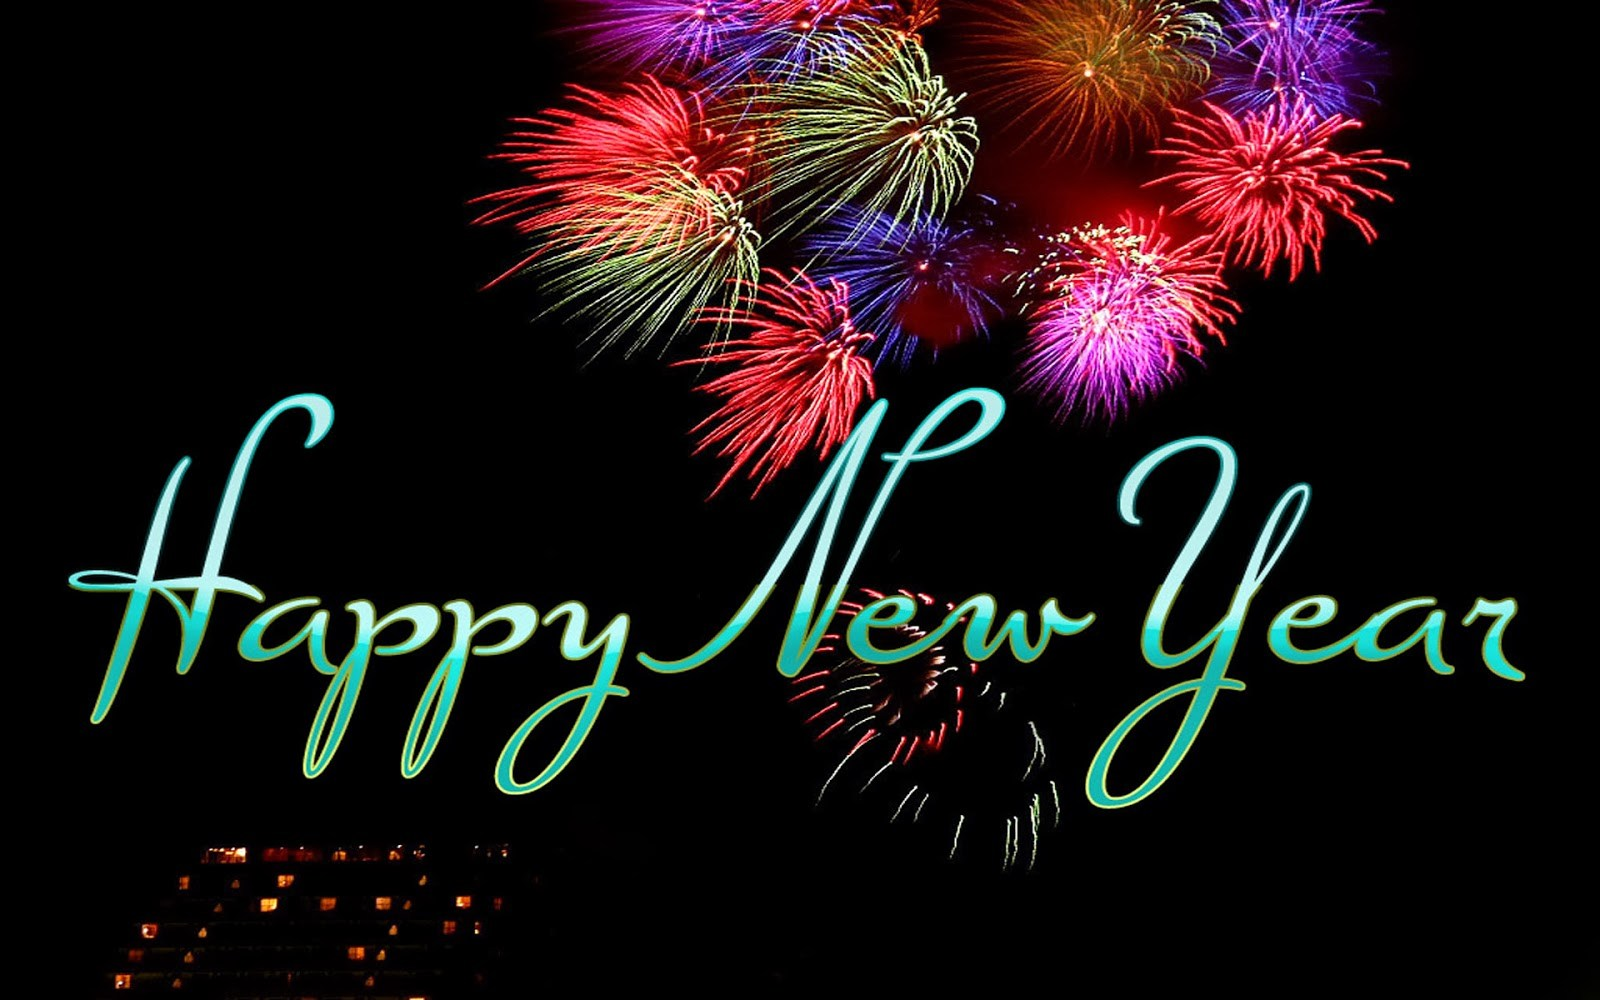 Animated happy new year clipart 4 » Clipart Portal.